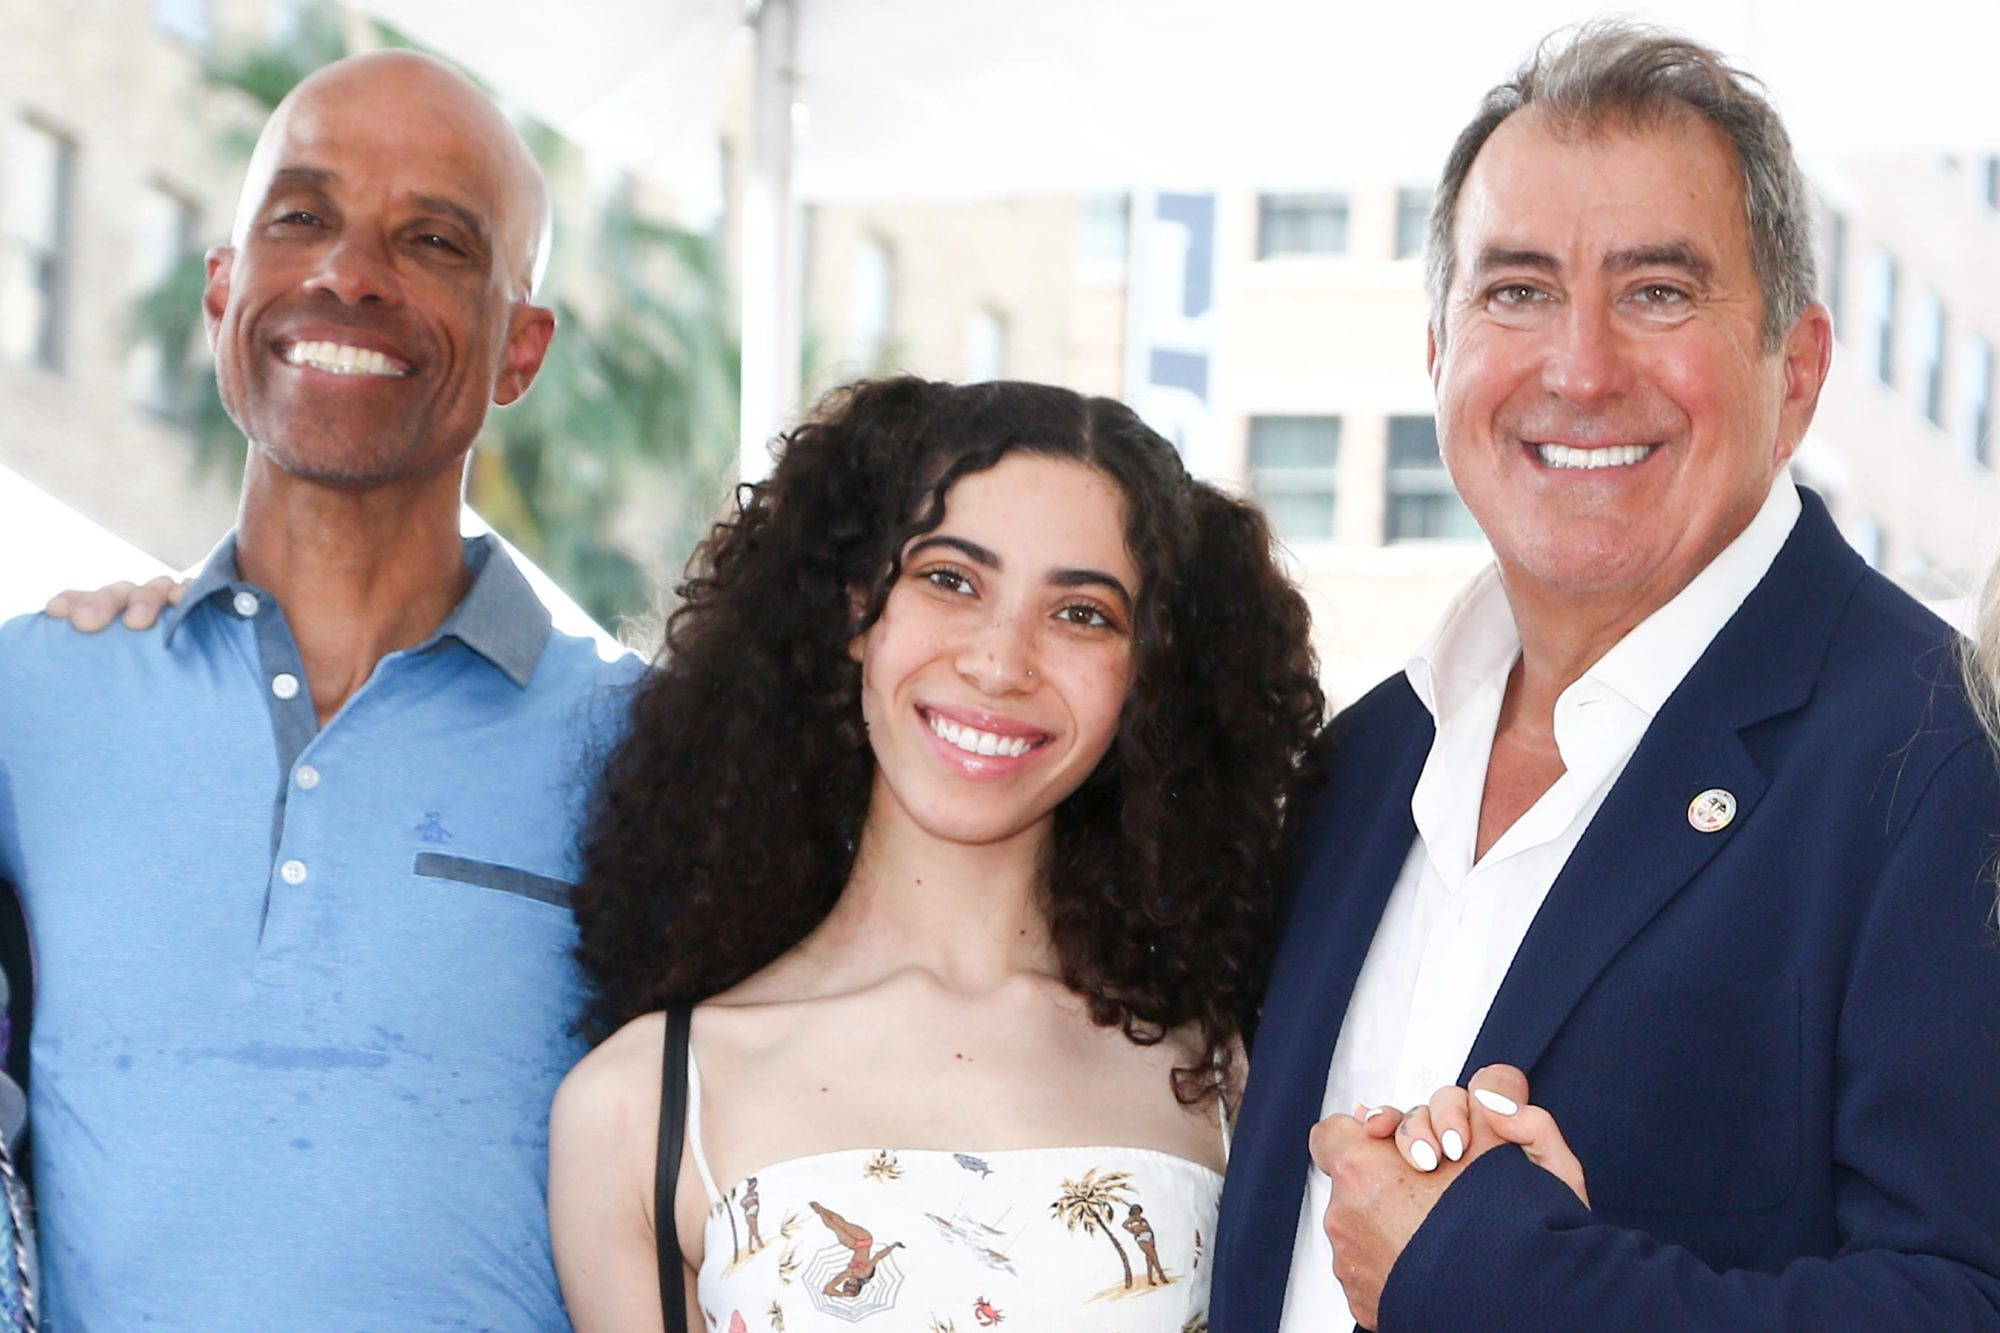 HOLLYWOOD, CALIFORNIA - JULY 24: Victor Boyce, Maya Boyce and Kenny Ortega attend a ceremony honoring Kenny Ortega with a star on The Hollywood Walk of Fame on July 24, 2019 in Hollywood, California. (Photo by Tommaso Boddi/WireImage)